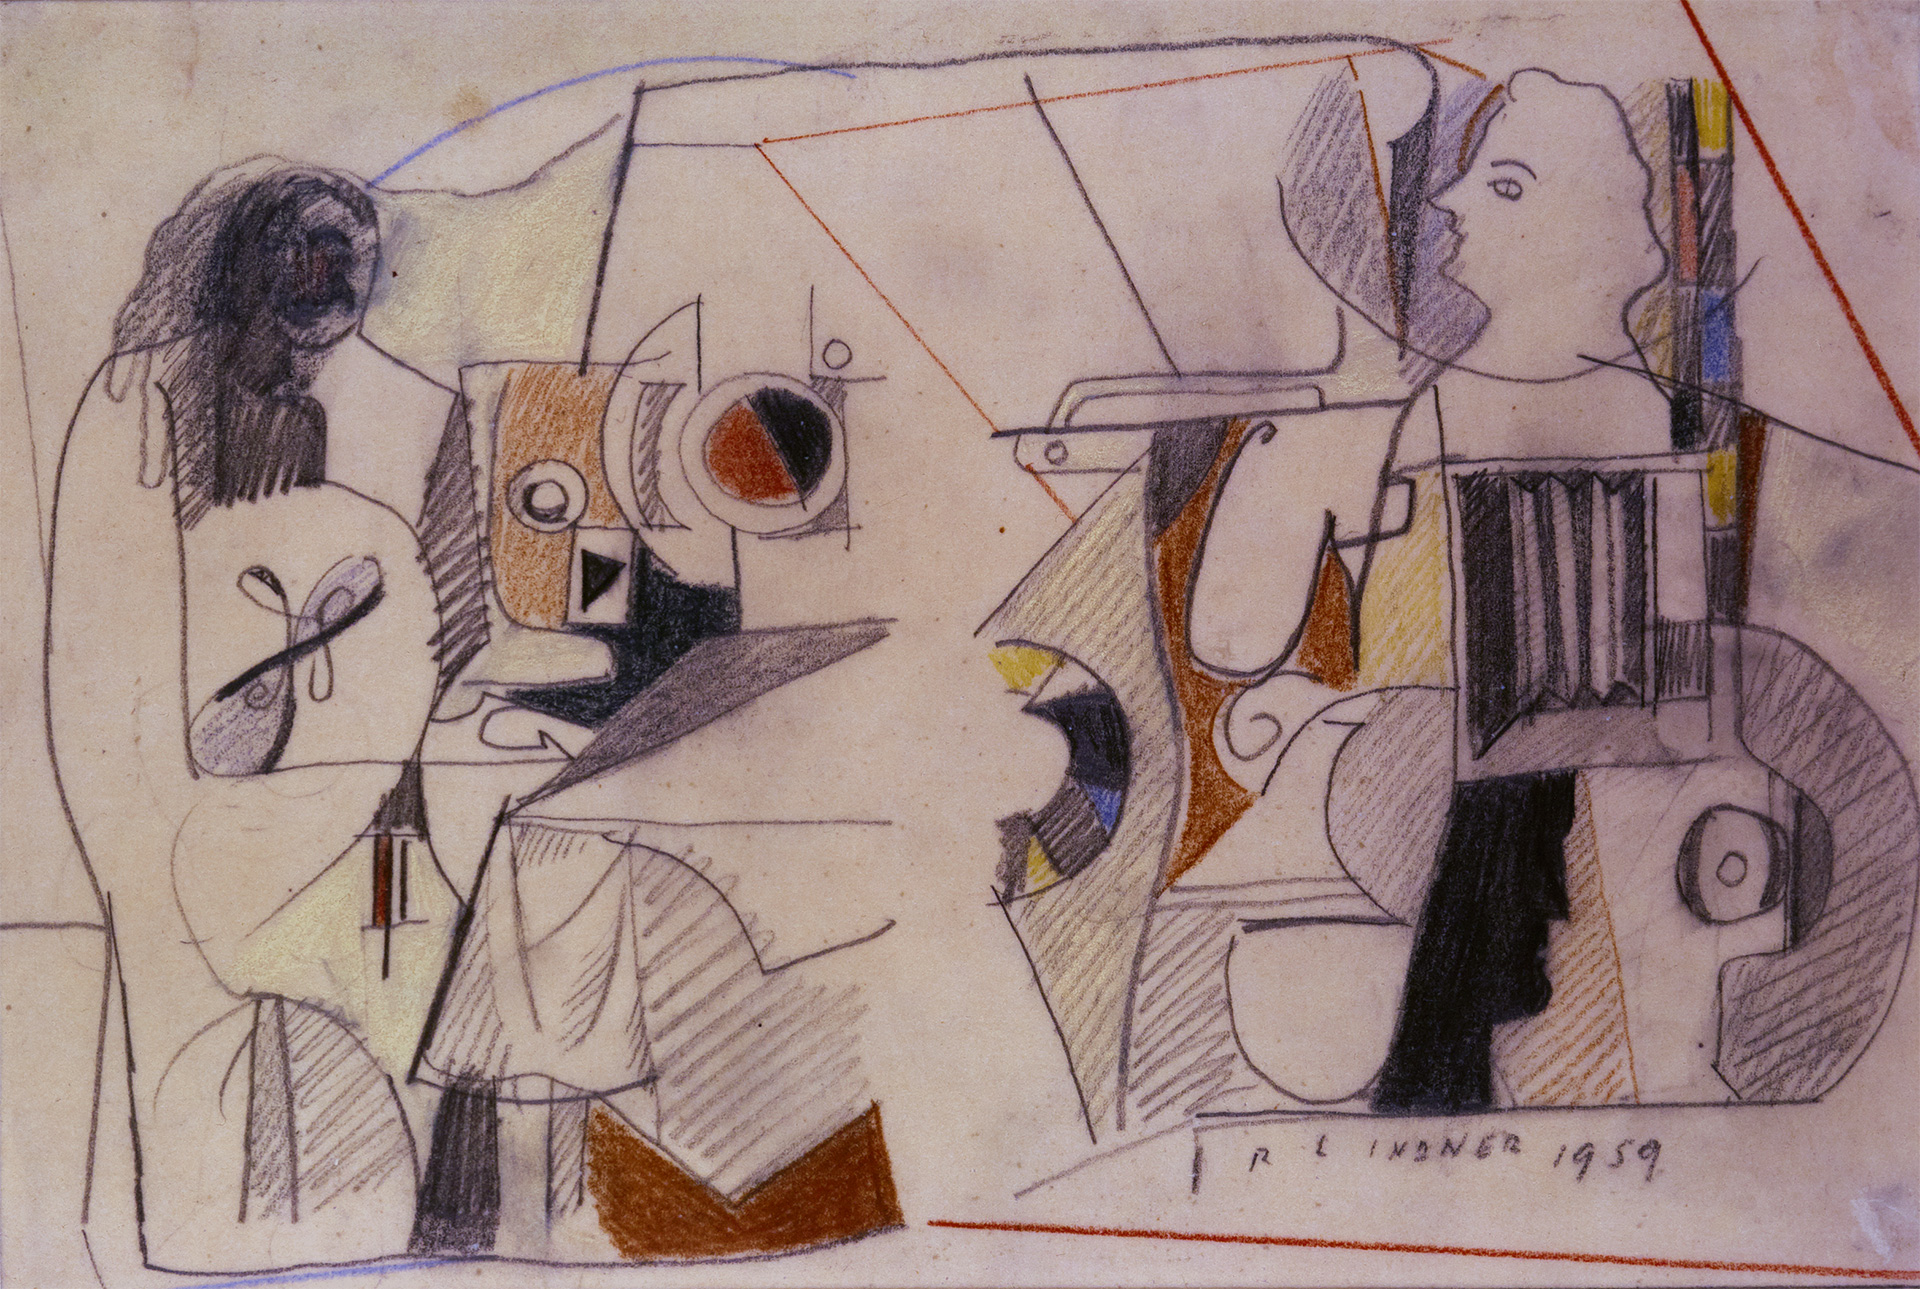 Untitled No. 4, 1959